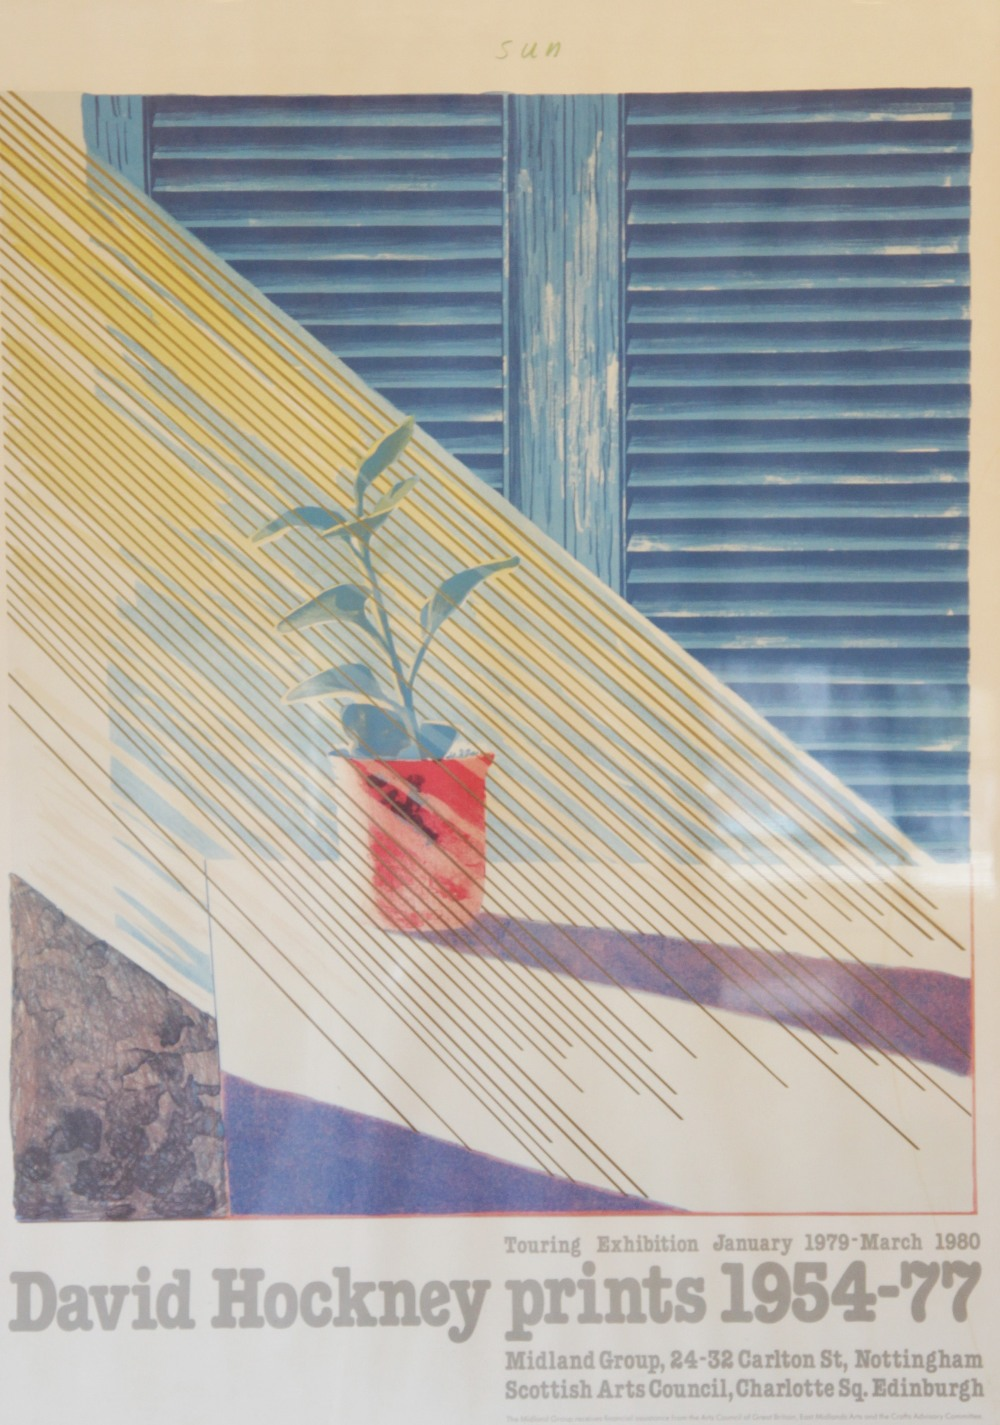 A David Hockney exhibition poster for the 'David Hockney prints 1954-77' touring exhibition held